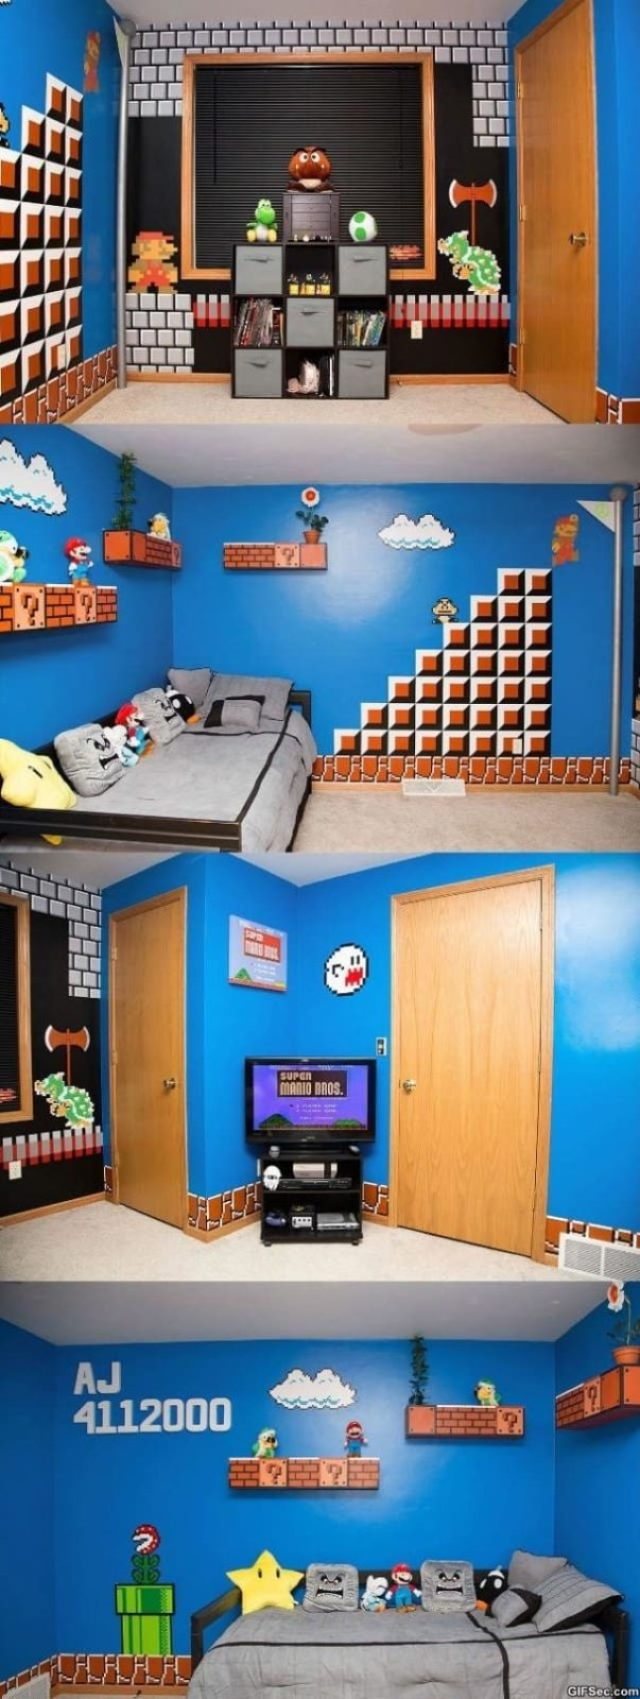 It's never too geeky to be a hardcore of fan of super mario